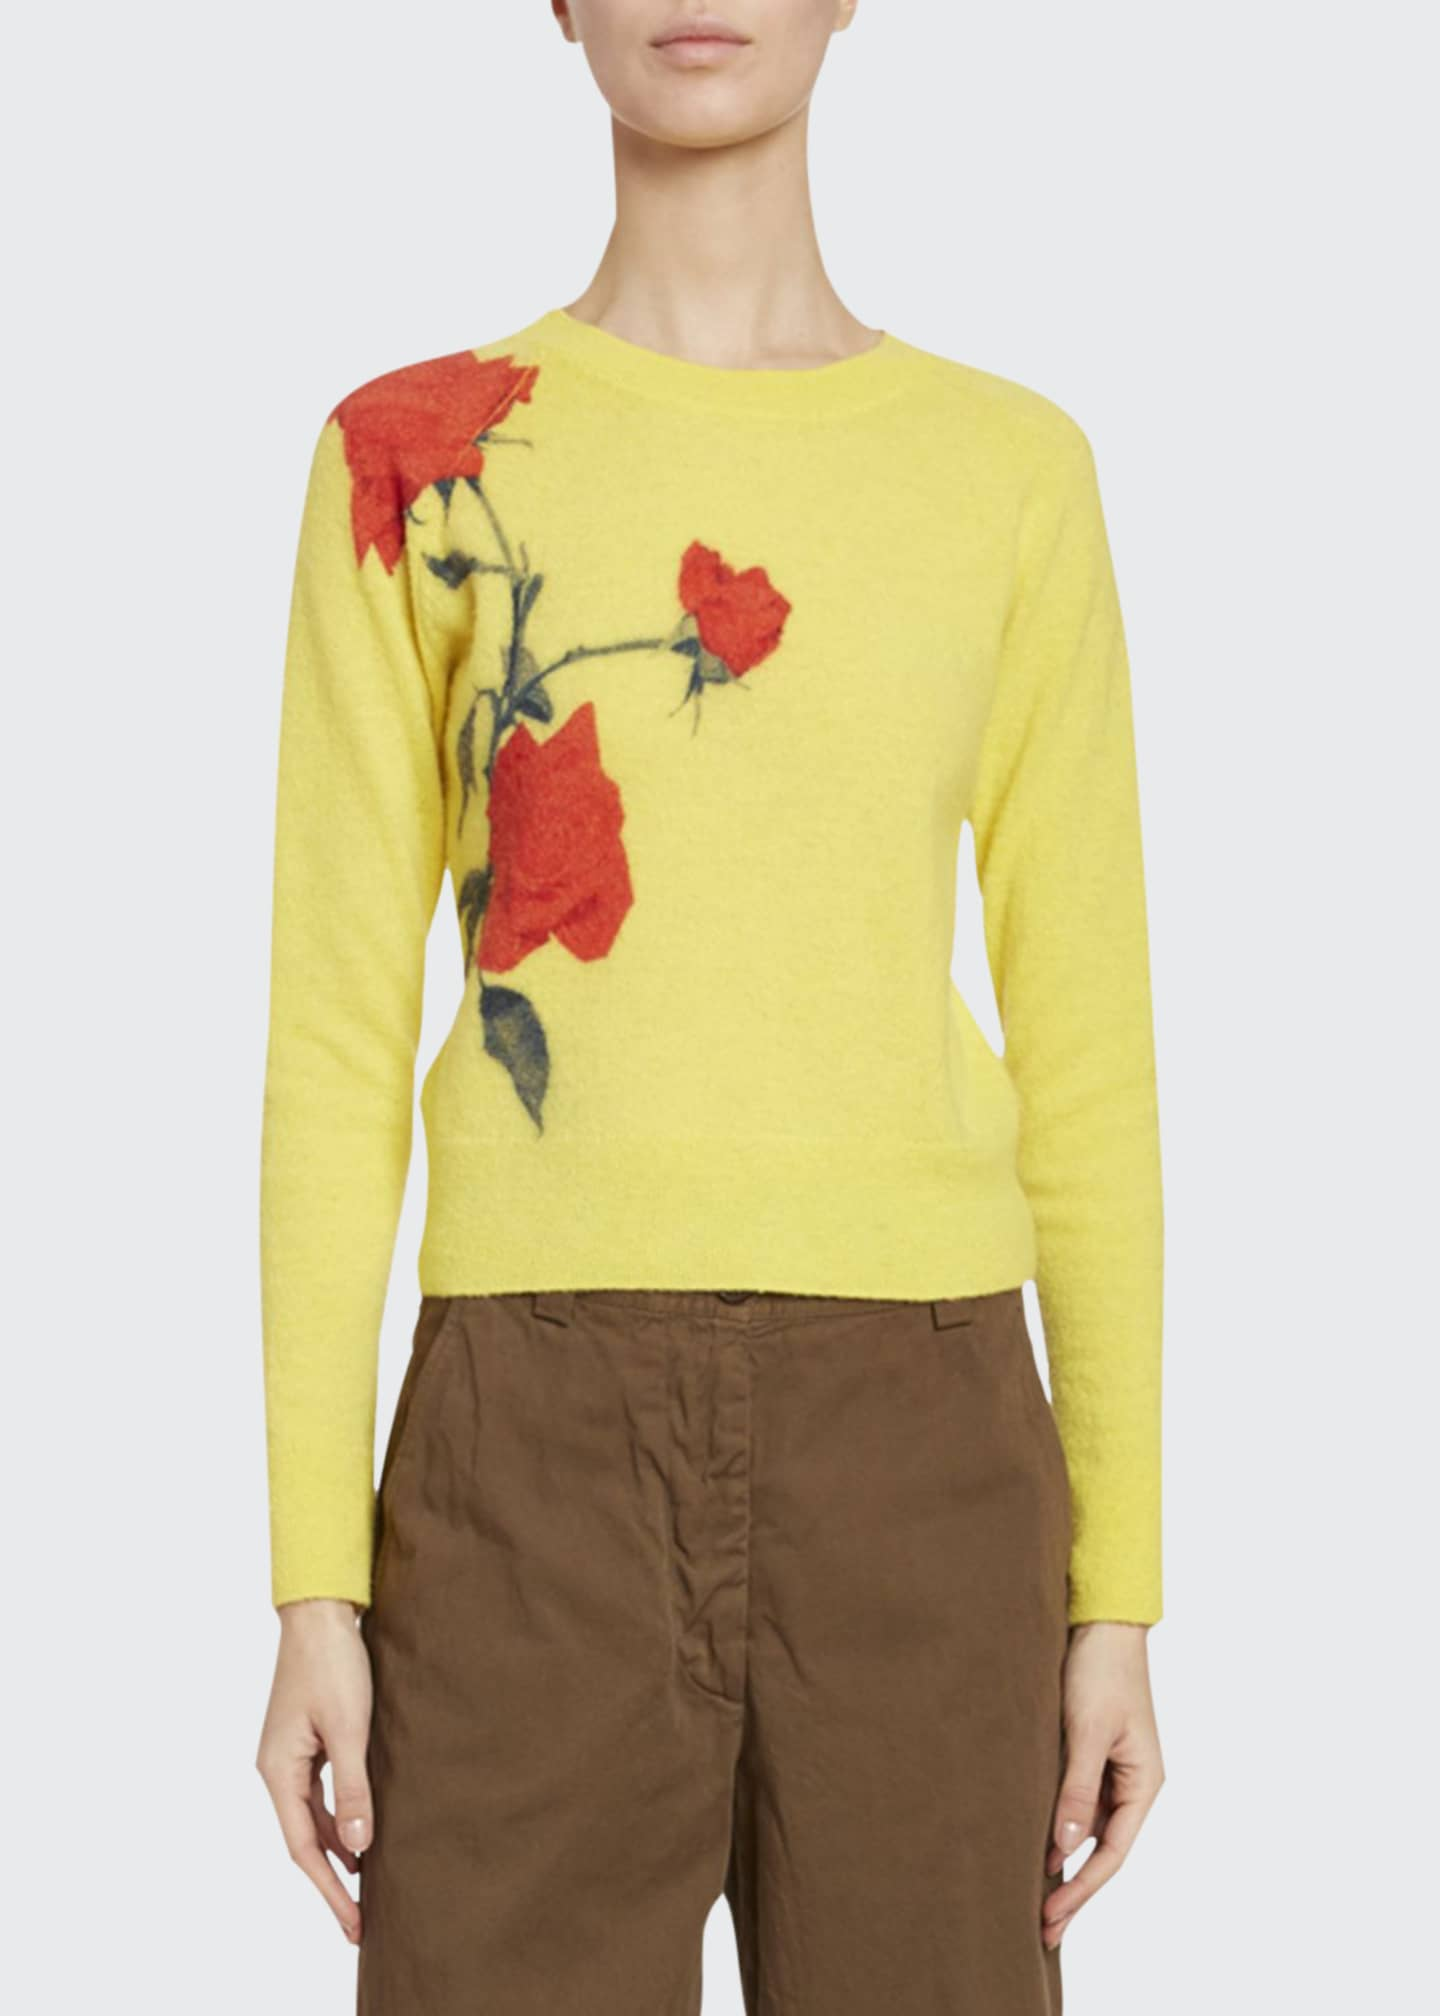 Dries Van Noten Rose-Jacquard Crewneck Sweater